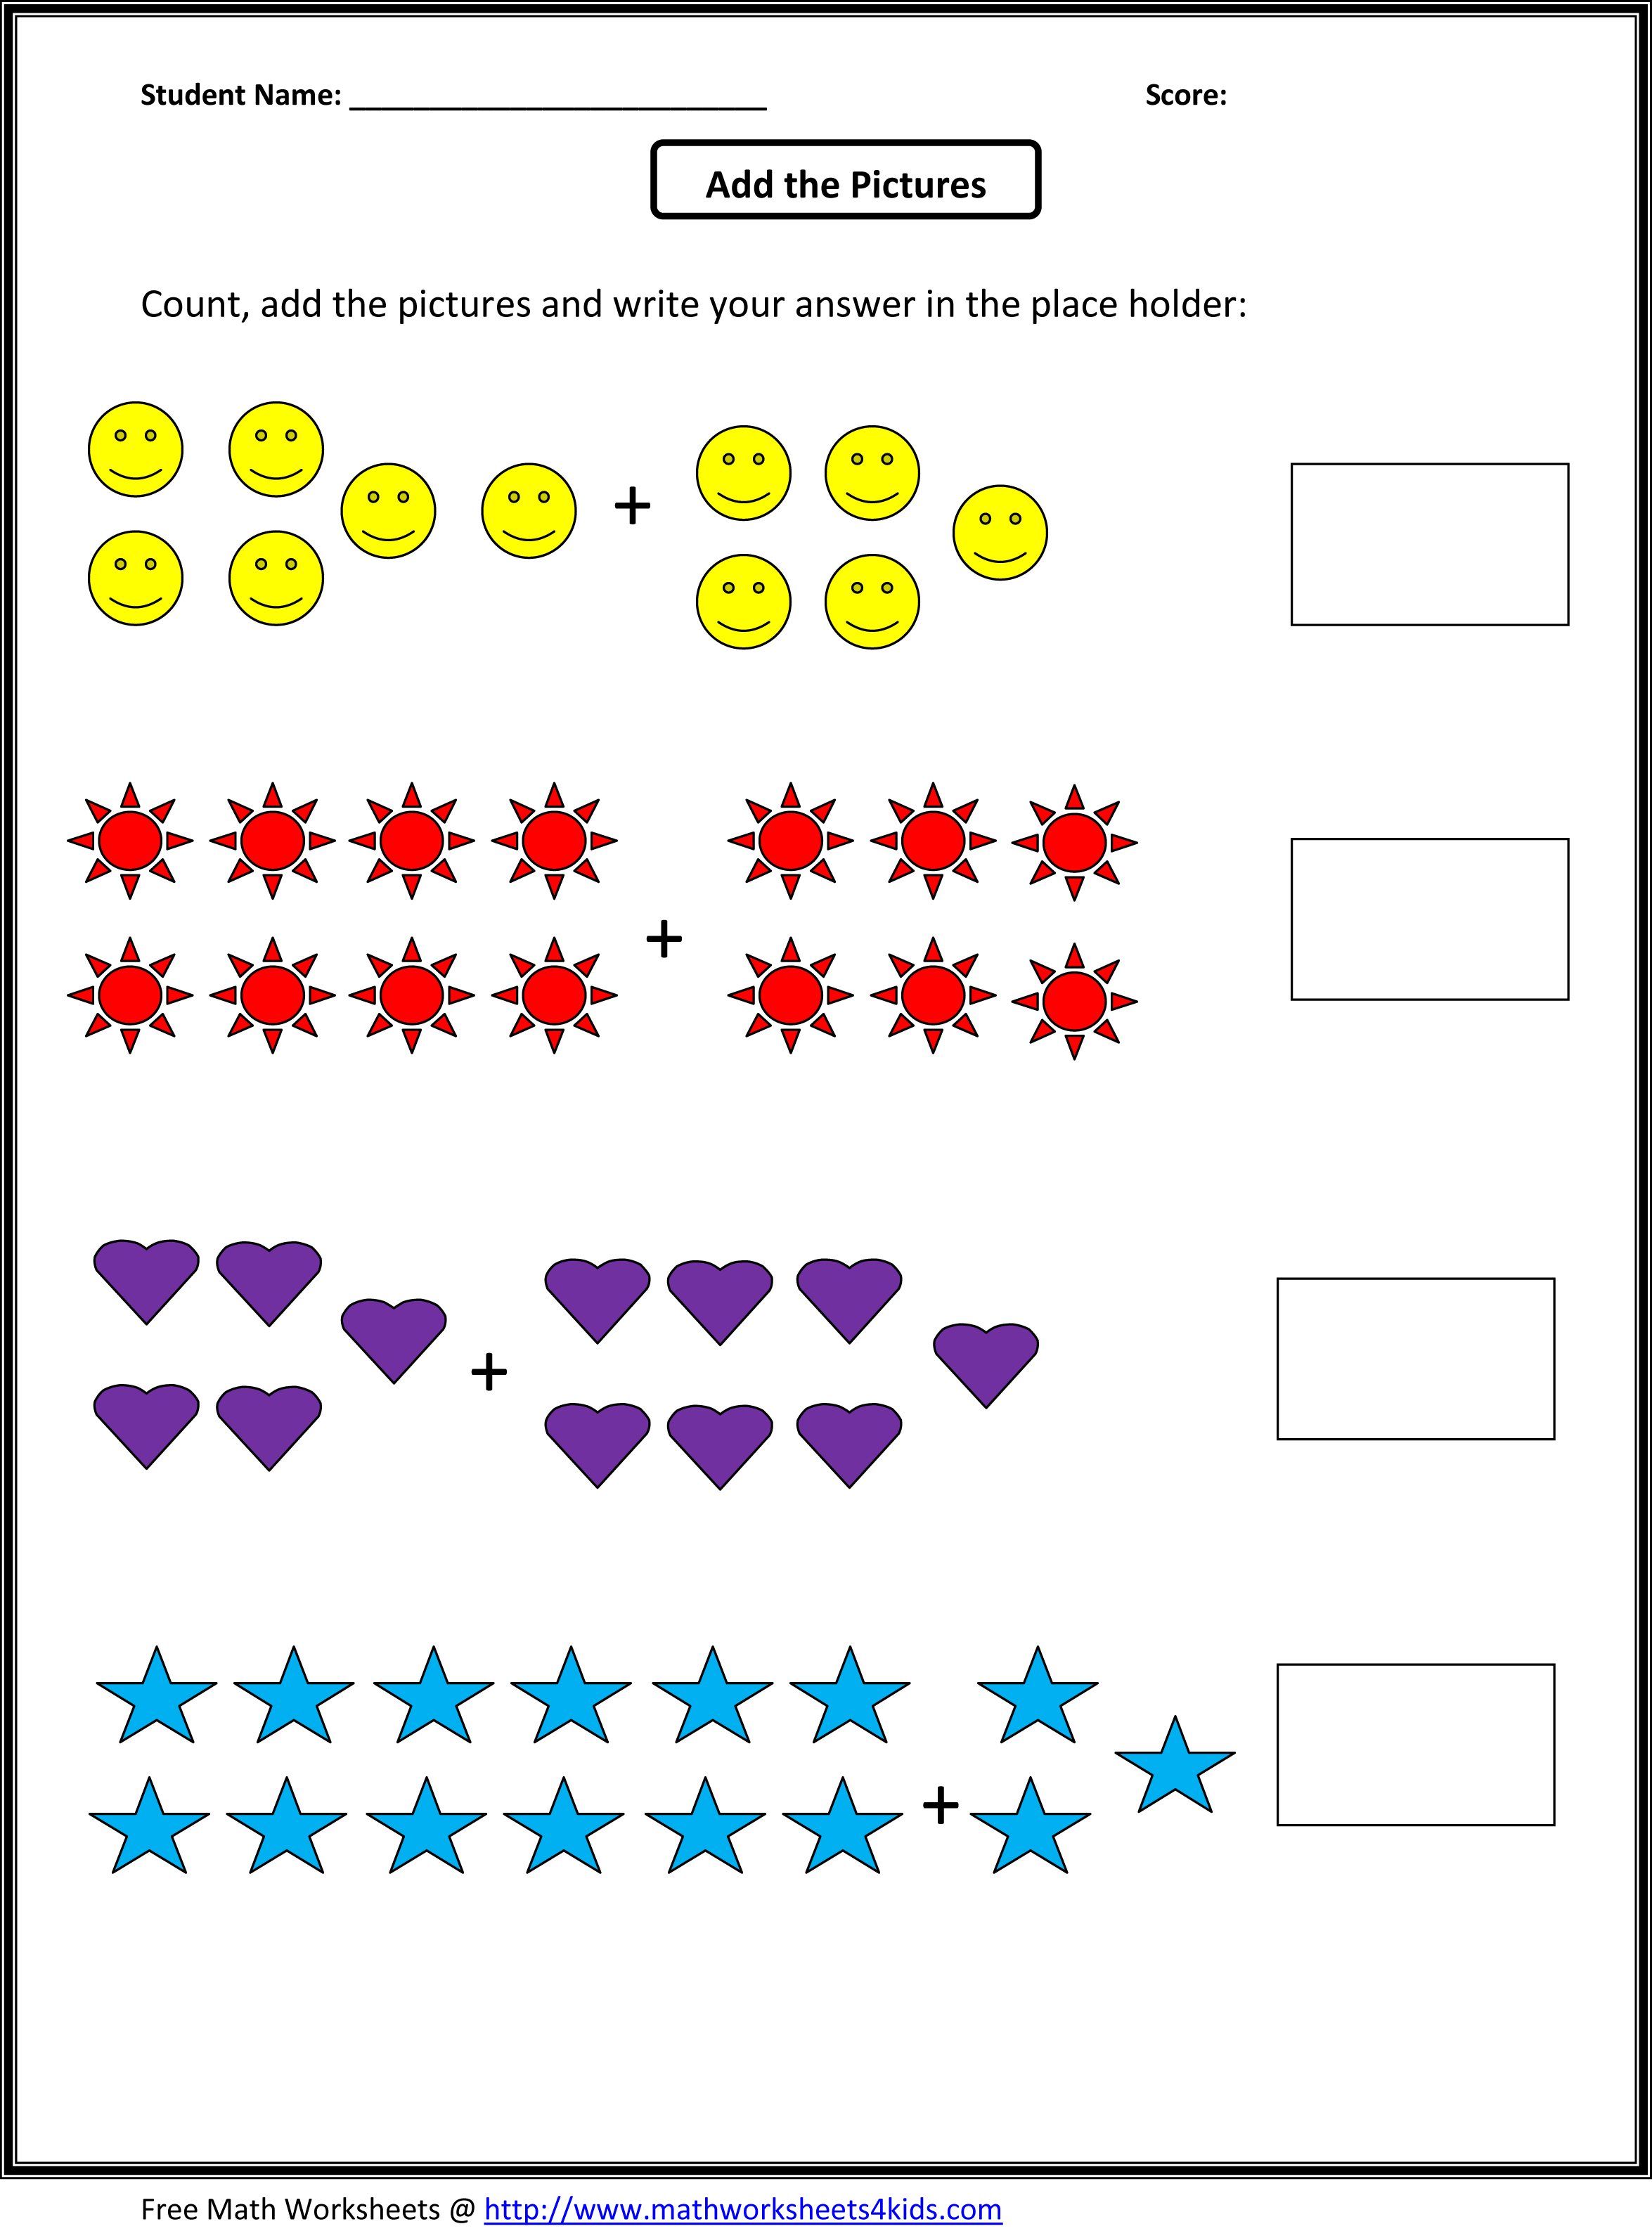 Proatmealus  Seductive Grade  Maths Worksheet  Reocurent With Lovable Math Worksheets For St Grade Free  Reocurent With Cute Free Printable Number Worksheets  Also Family Worksheets For Kids In Addition Free Printable Area Worksheets And Worksheets For Handwriting Improvement As Well As Cm Into Mm Worksheets Additionally Worksheet On Nouns For Grade  From Reocurentcom With Proatmealus  Lovable Grade  Maths Worksheet  Reocurent With Cute Math Worksheets For St Grade Free  Reocurent And Seductive Free Printable Number Worksheets  Also Family Worksheets For Kids In Addition Free Printable Area Worksheets From Reocurentcom